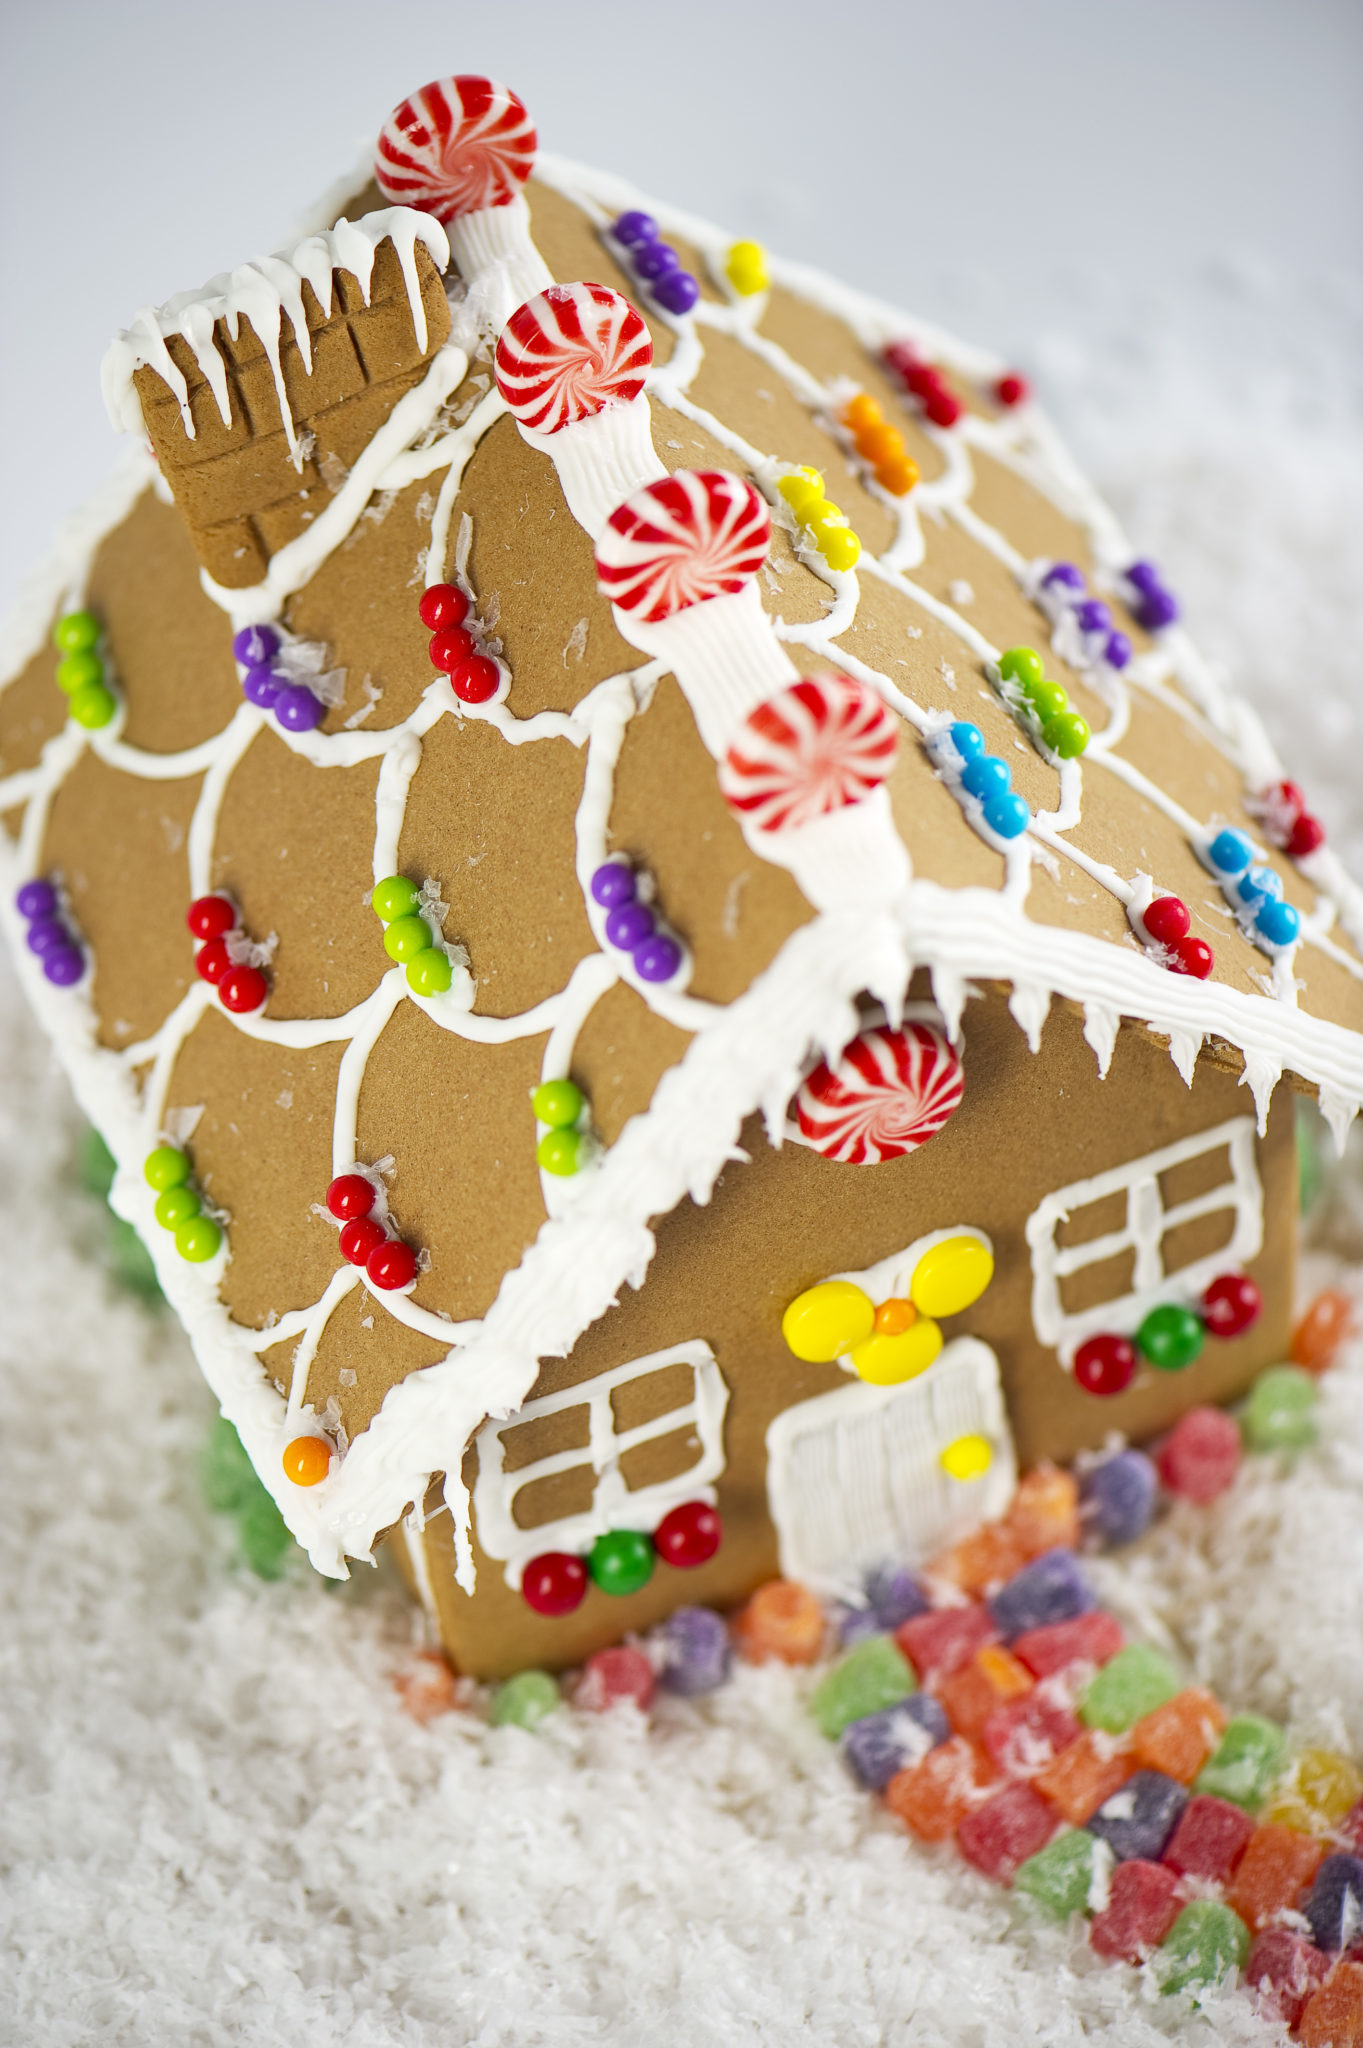 How to create a durable gingerbread house